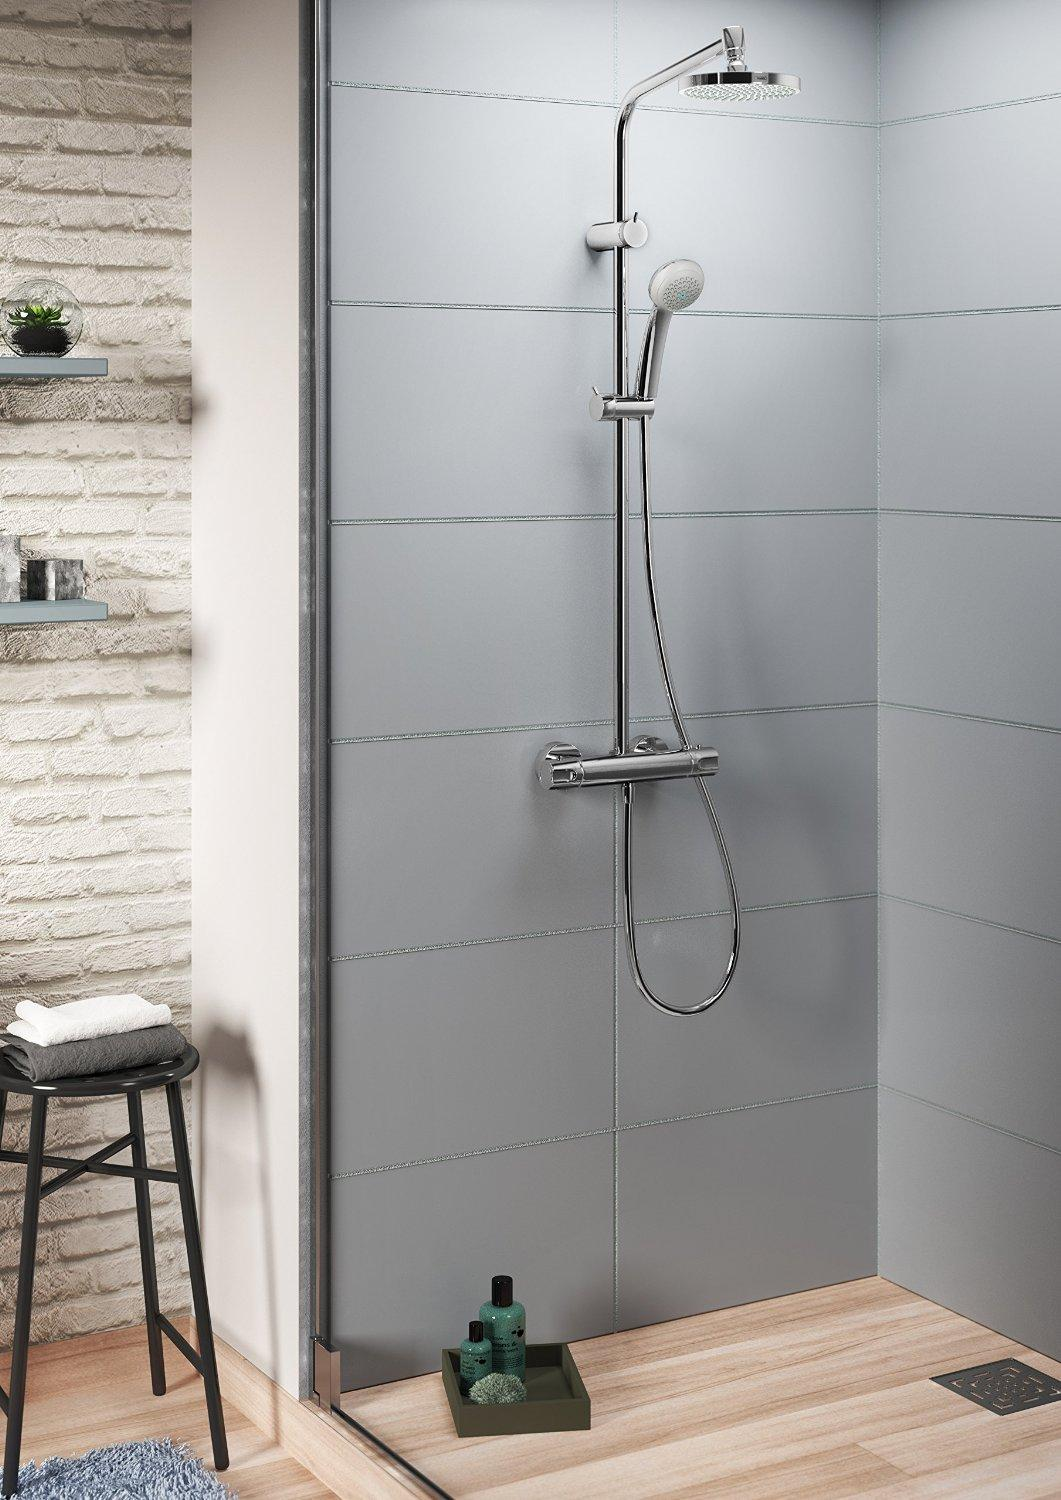 hansgrohe colonne de douche showerpipe marin 160 chrome. Black Bedroom Furniture Sets. Home Design Ideas